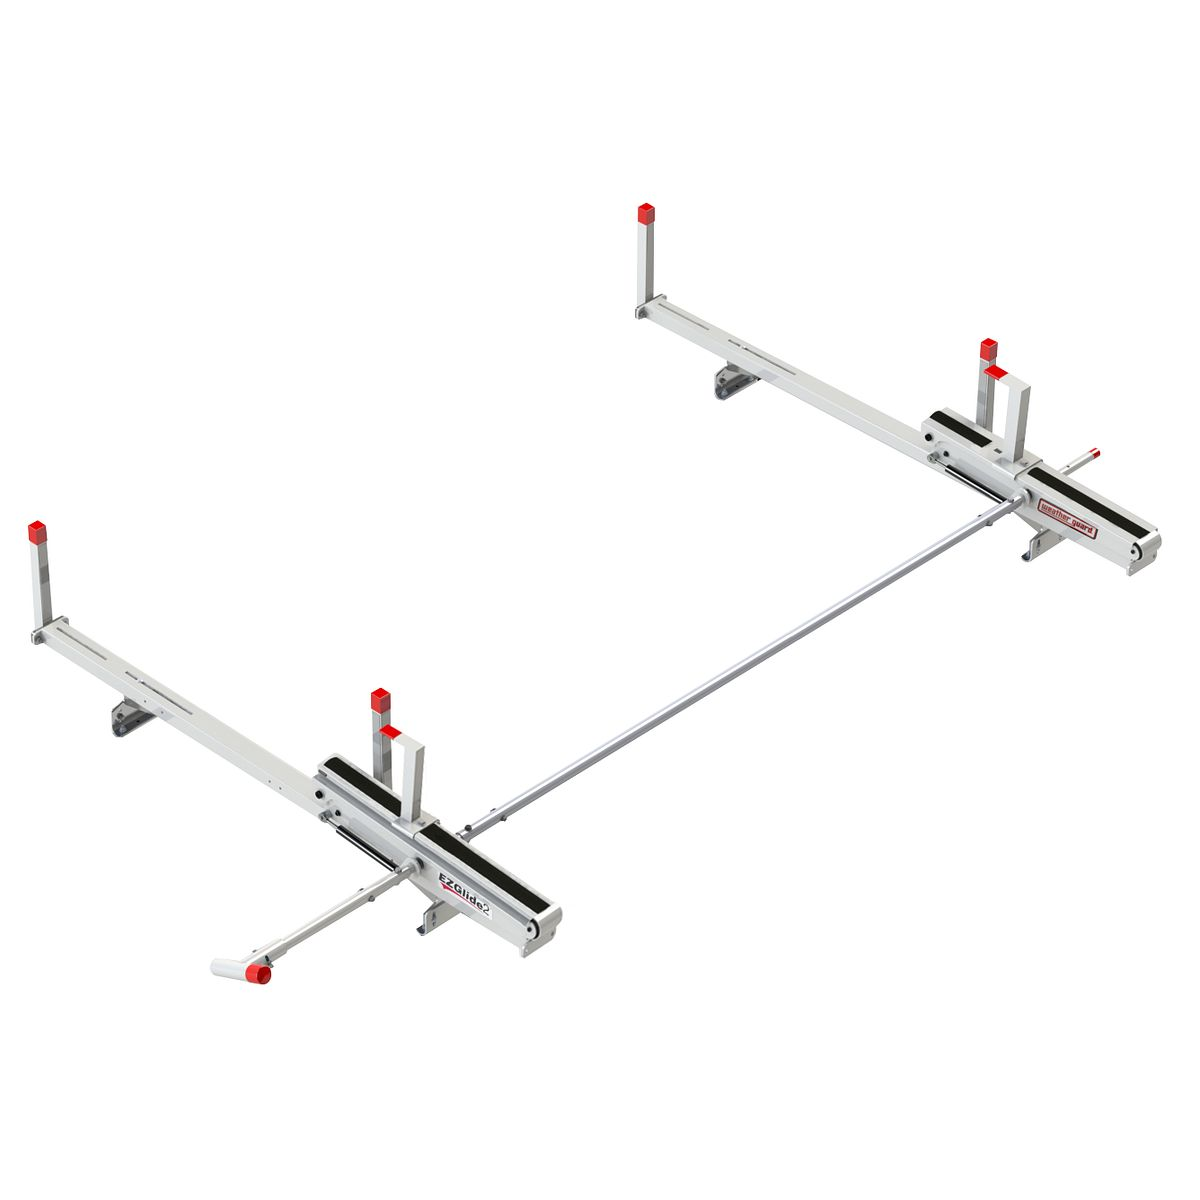 Ladder Rack Kits Weatherguard Ladder Racks